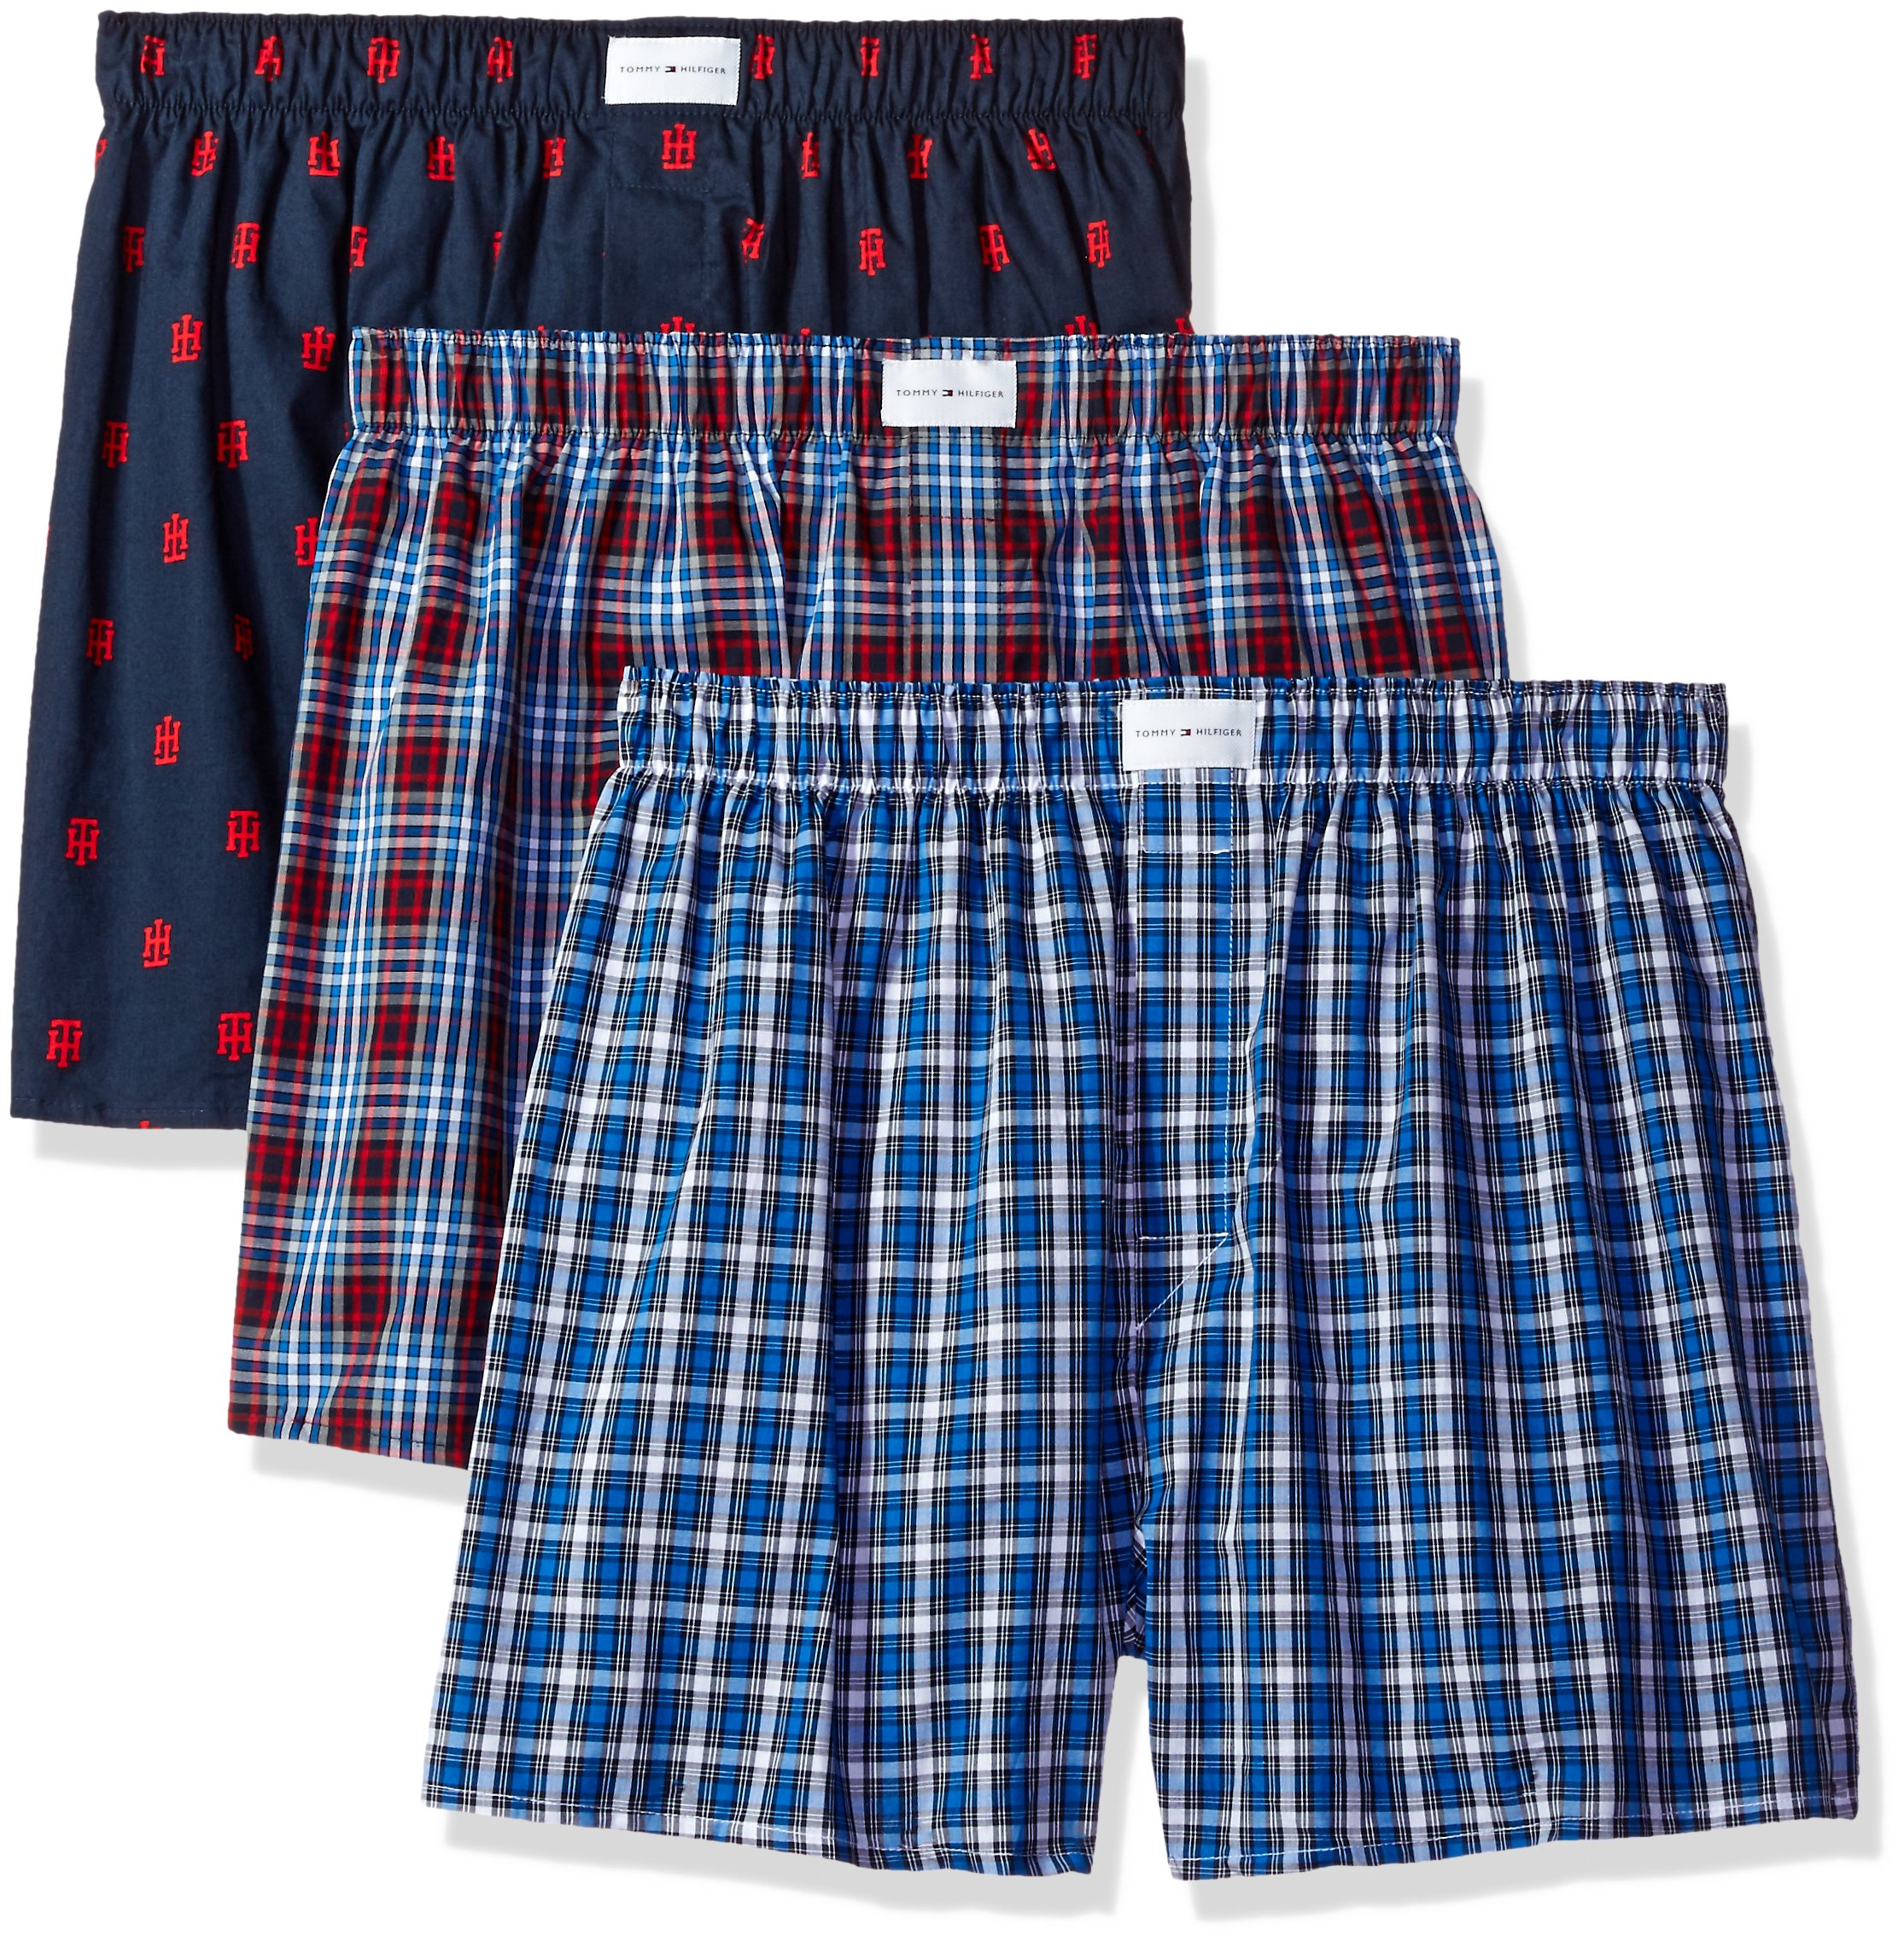 Tommy Hilfiger Men's Underwear 3 Pack Cotton Classics Woven Boxers, Red Plaid Logo Print/Blue Plaid, X-Large